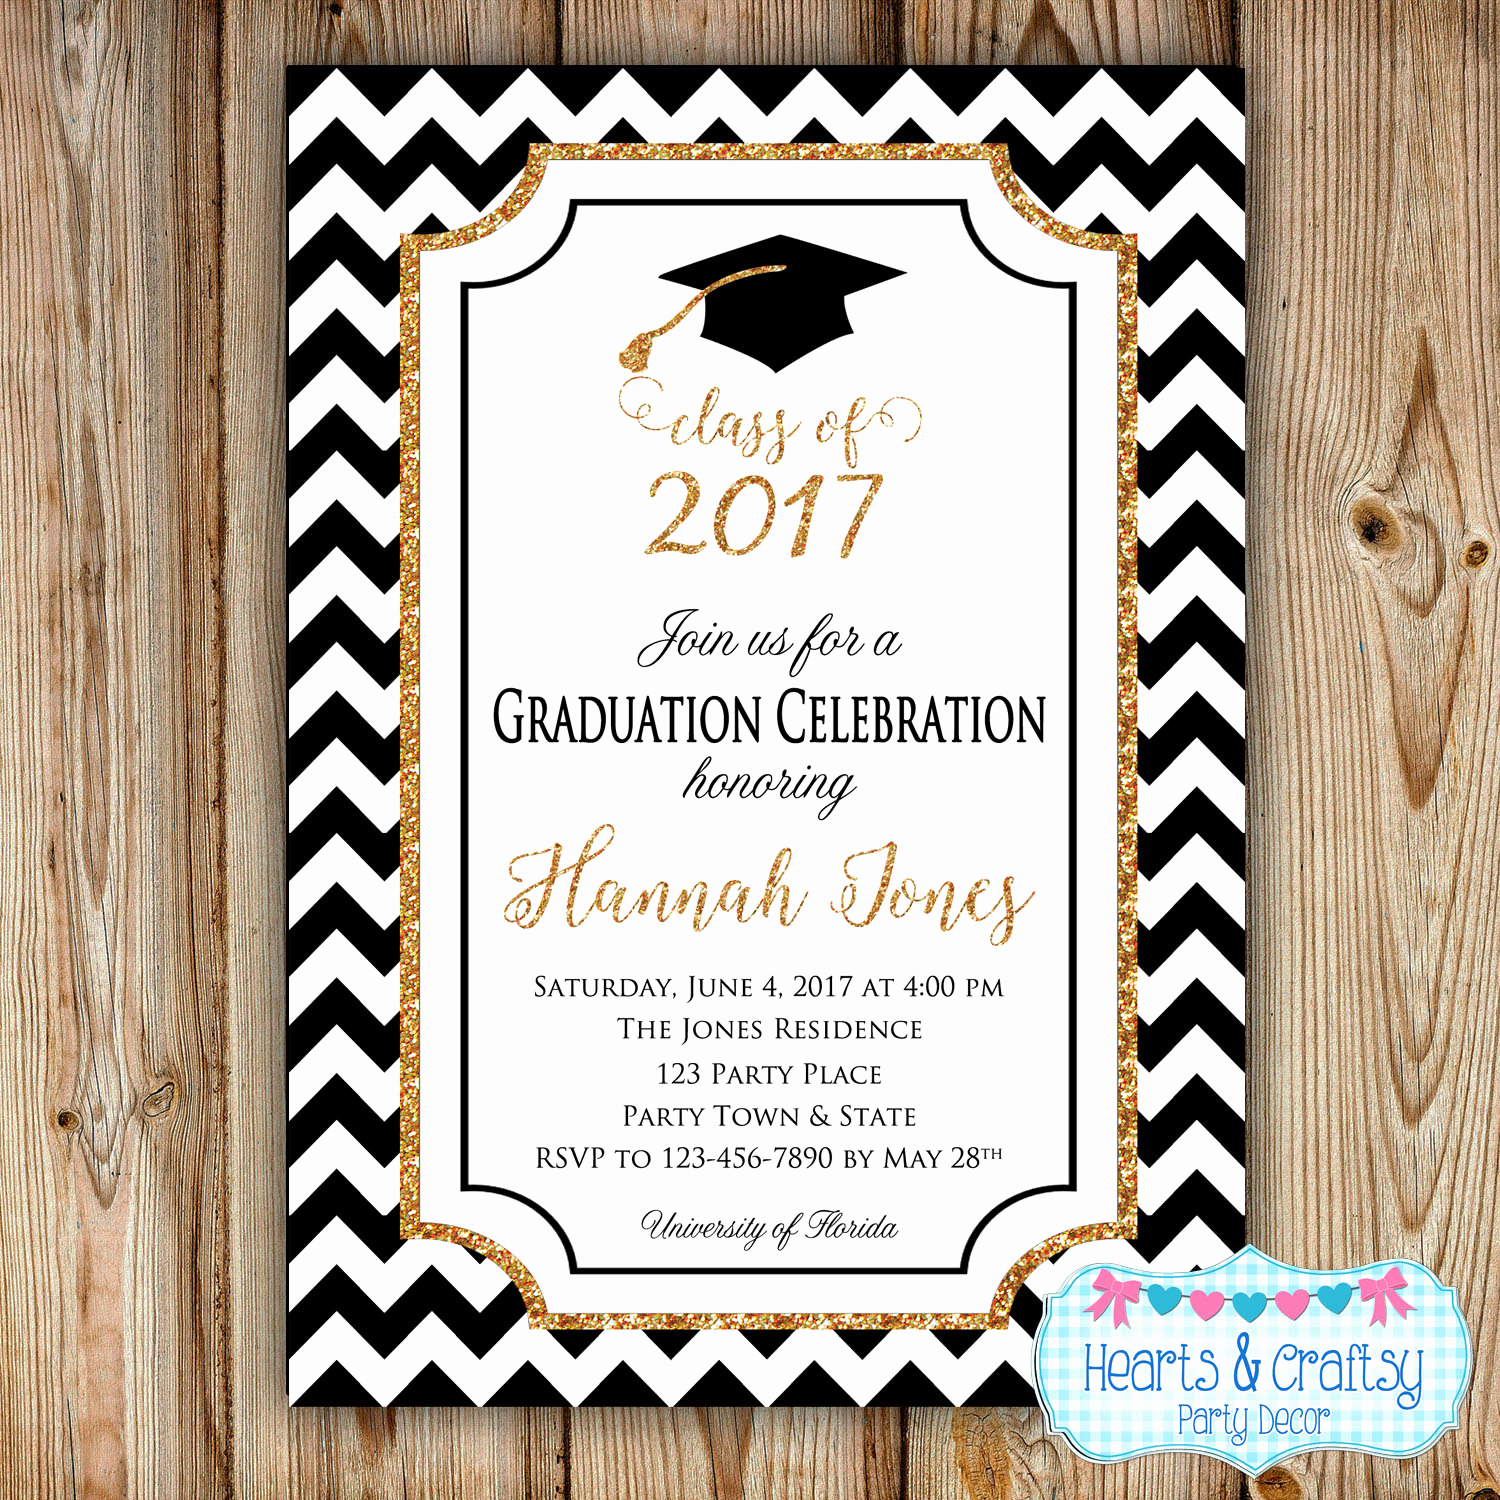 High School Graduation Invitation Awesome Graduation Party Invitation College Graduation Invitation